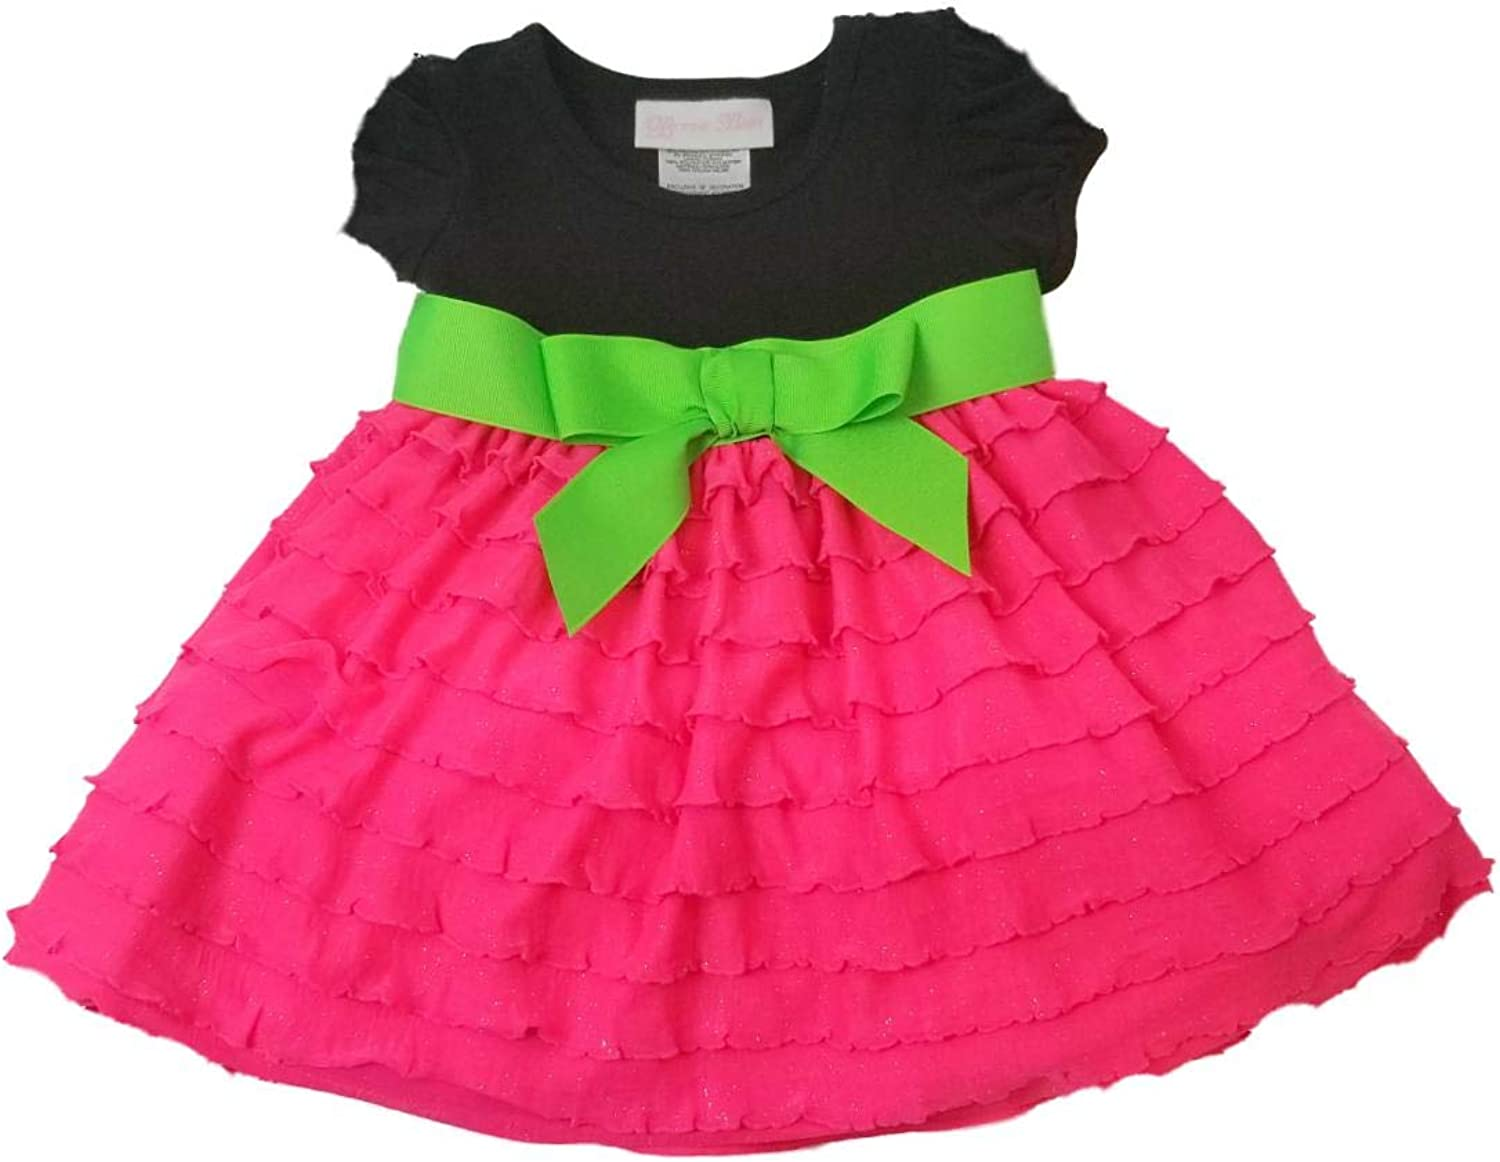 Bonnie Baby Infant Girls Black Al sold out. Neon Sundress Pink Sun Ruffle specialty shop Dre